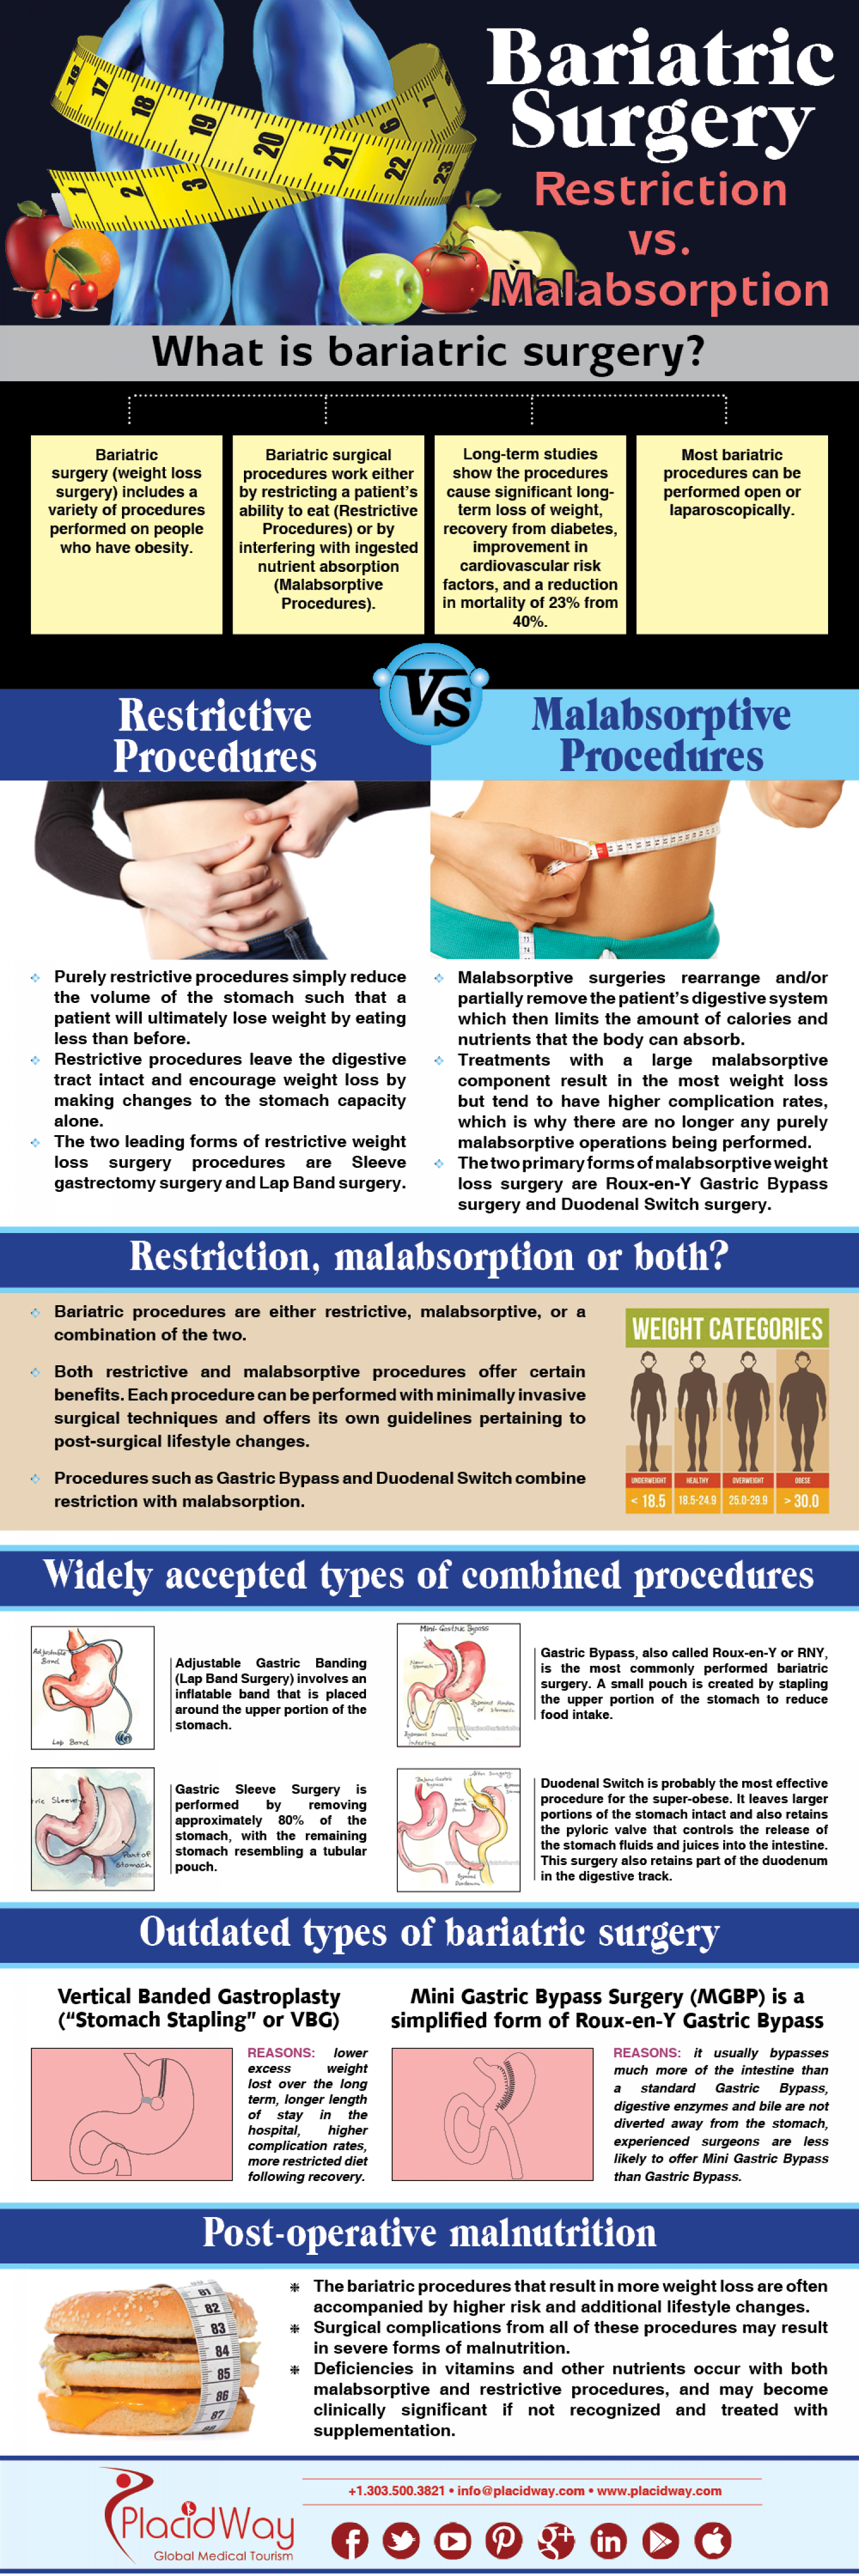 Bariatric Surgery Restriction vs. Malabsorption Infographic